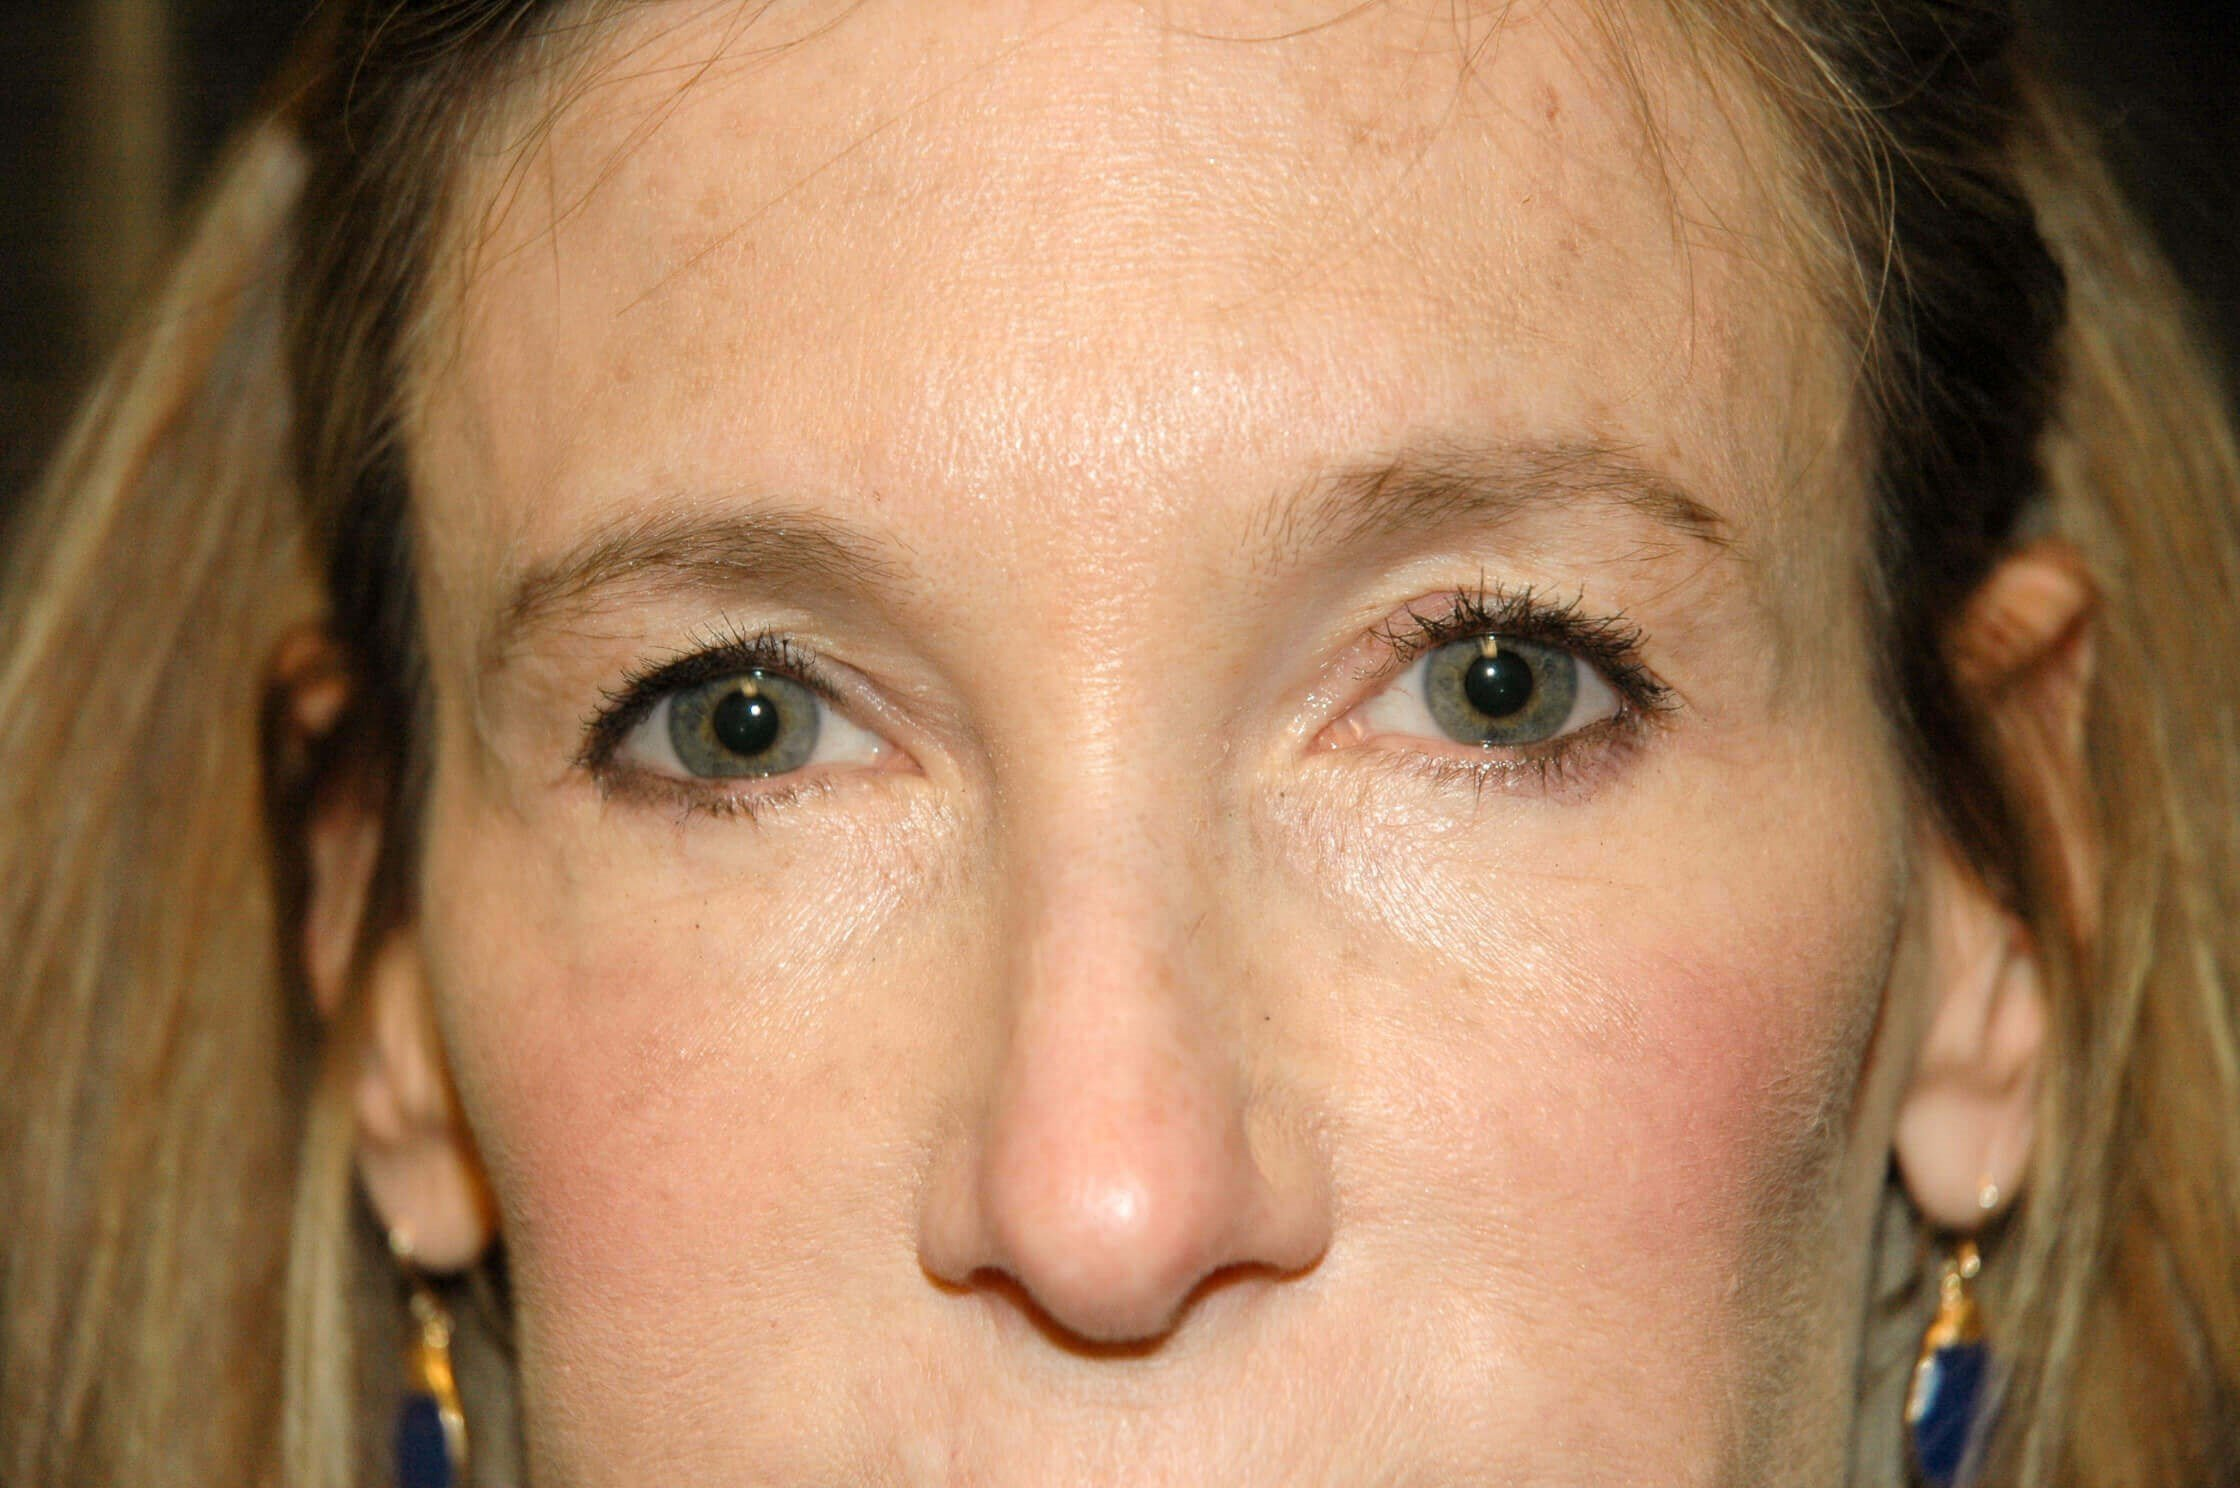 Upper Eyelid Plastic Surgery Before